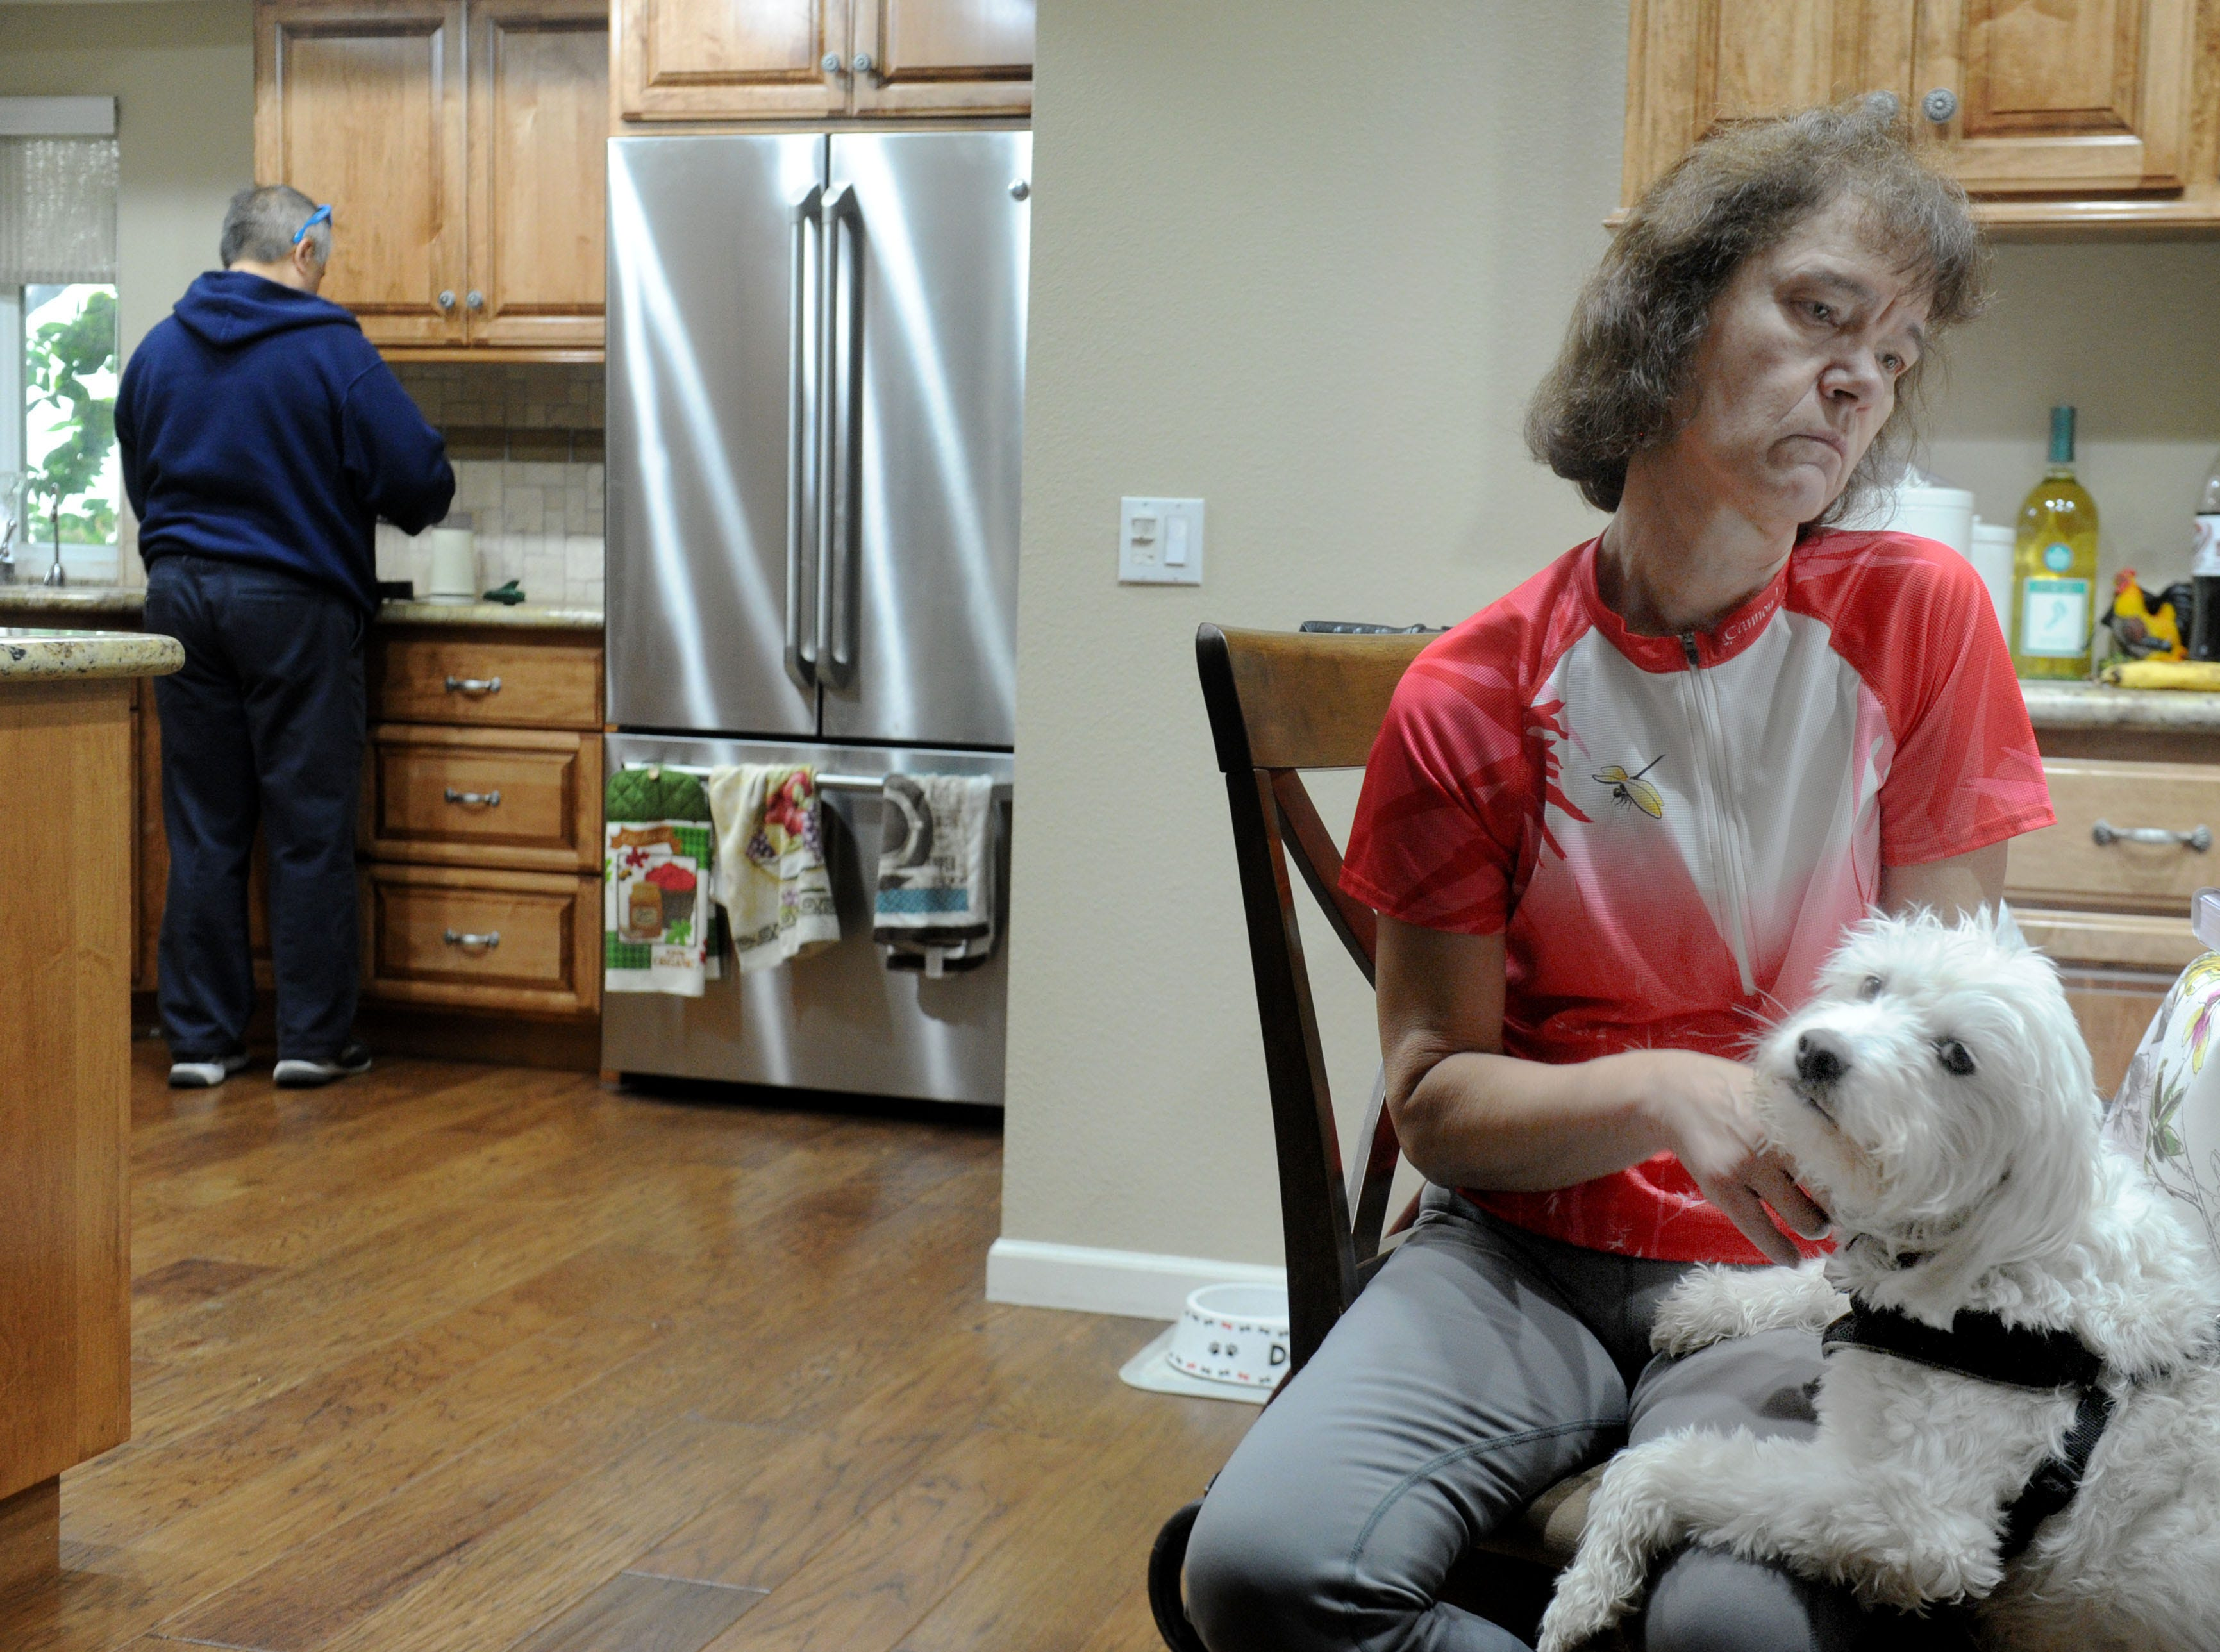 Debbie Jew pets her dog, Karly, as her husband, Frank Jew, makes a cup of coffee. She was diagnosed with Parkinson's disease about 13 years ago.